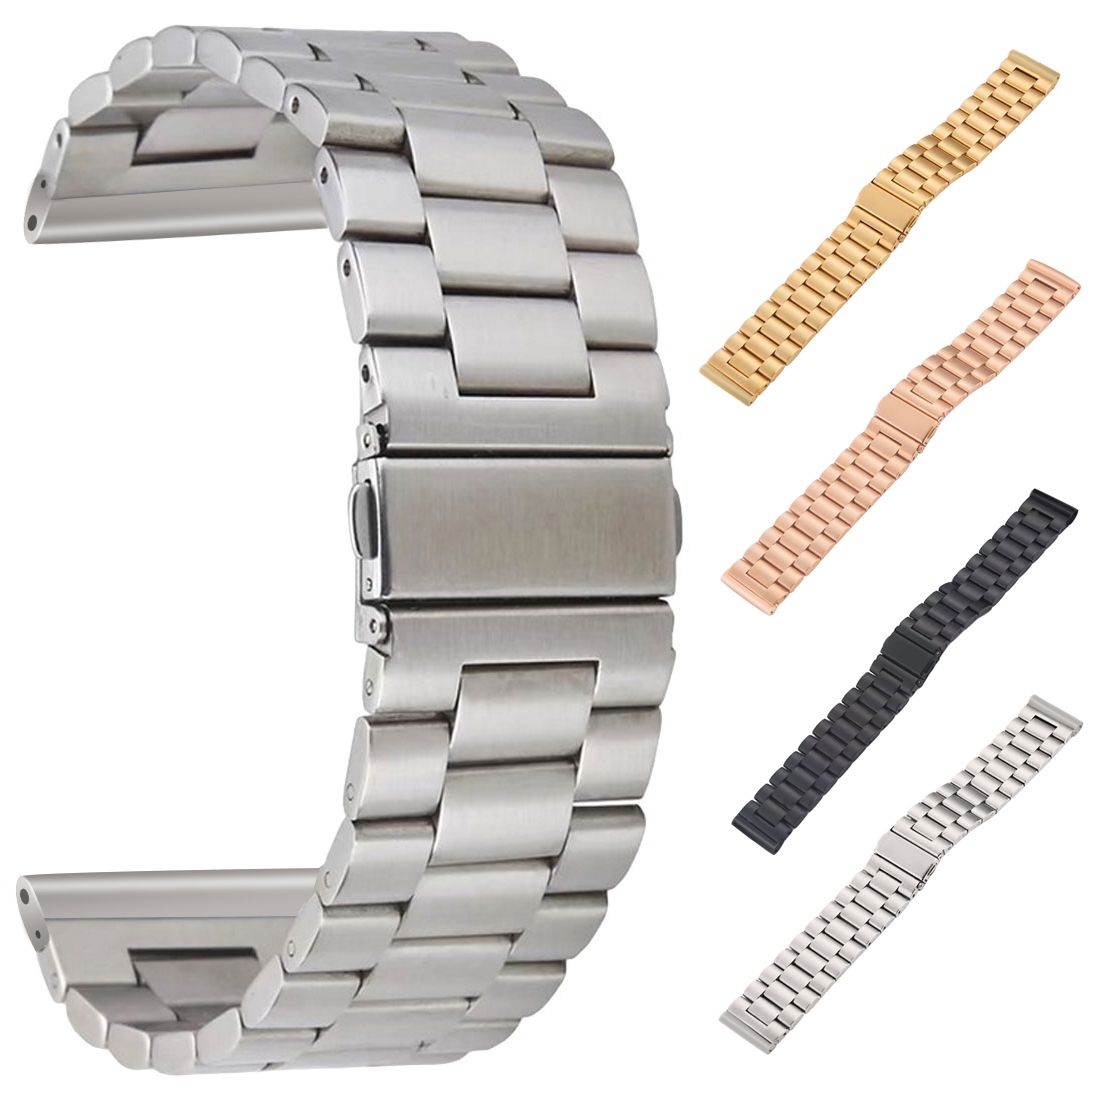 Stainless Steel metal band Strap for apple watch 3/2/1 42 38 mm link bracelet wrist belt Watchband for iWatch AccessoriesStainless Steel metal band Strap for apple watch 3/2/1 42 38 mm link bracelet wrist belt Watchband for iWatch Accessories